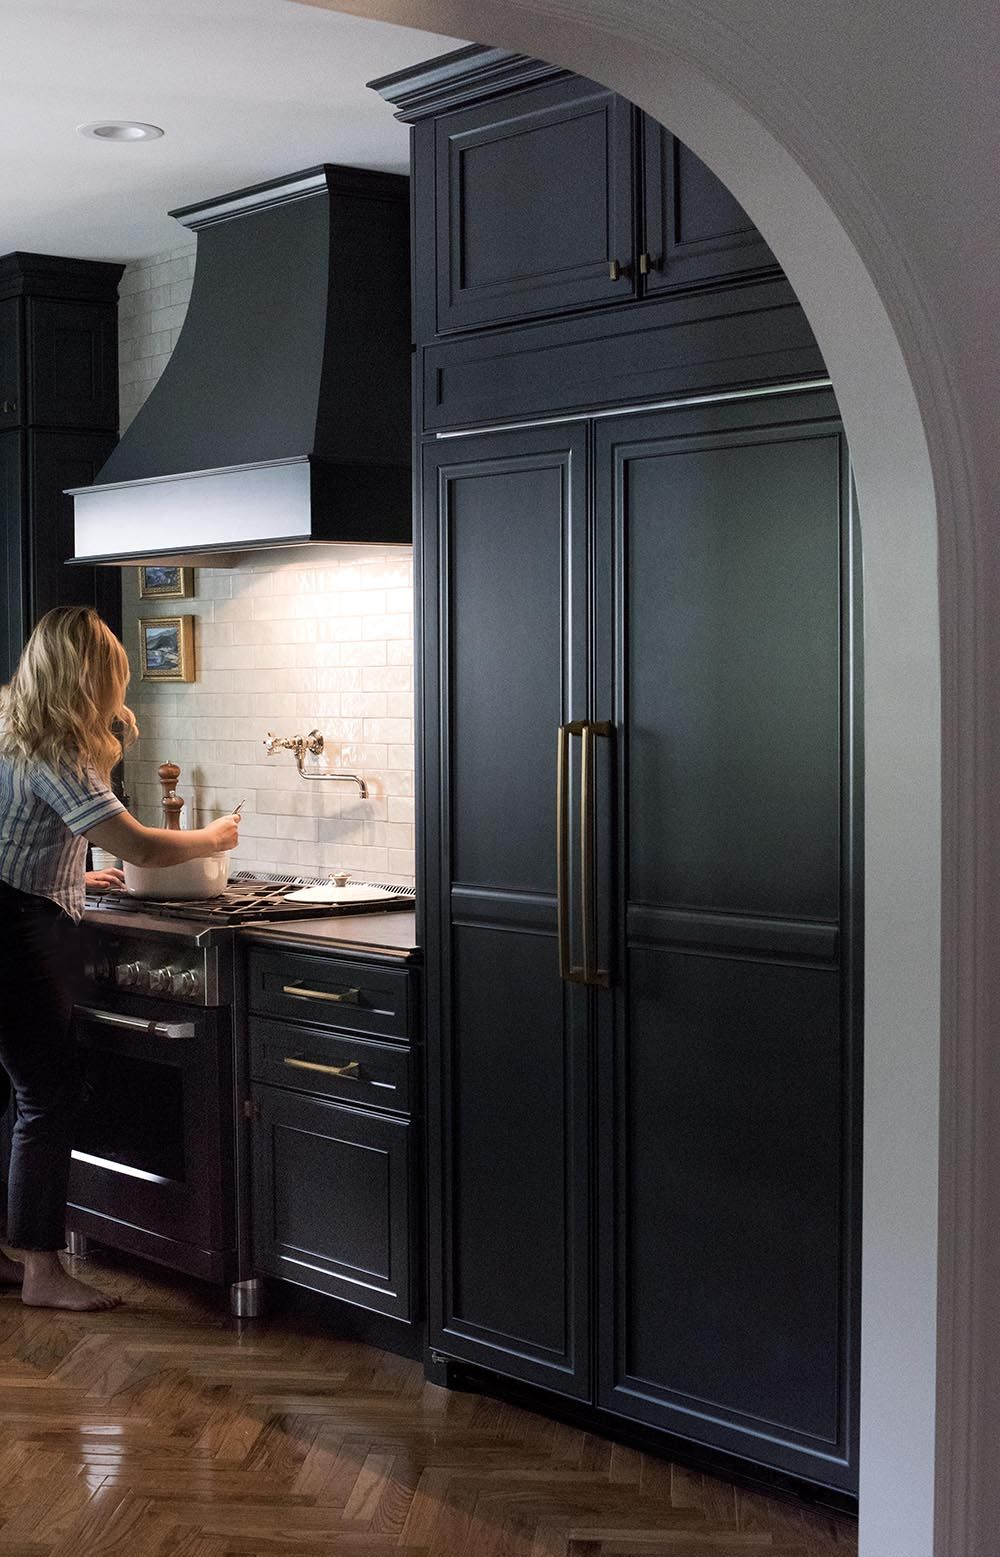 Guide For Properly Lighting A Kitchen Room For Tuesday Recessed Lighting Installing Recessed Lighting Kitchen Room